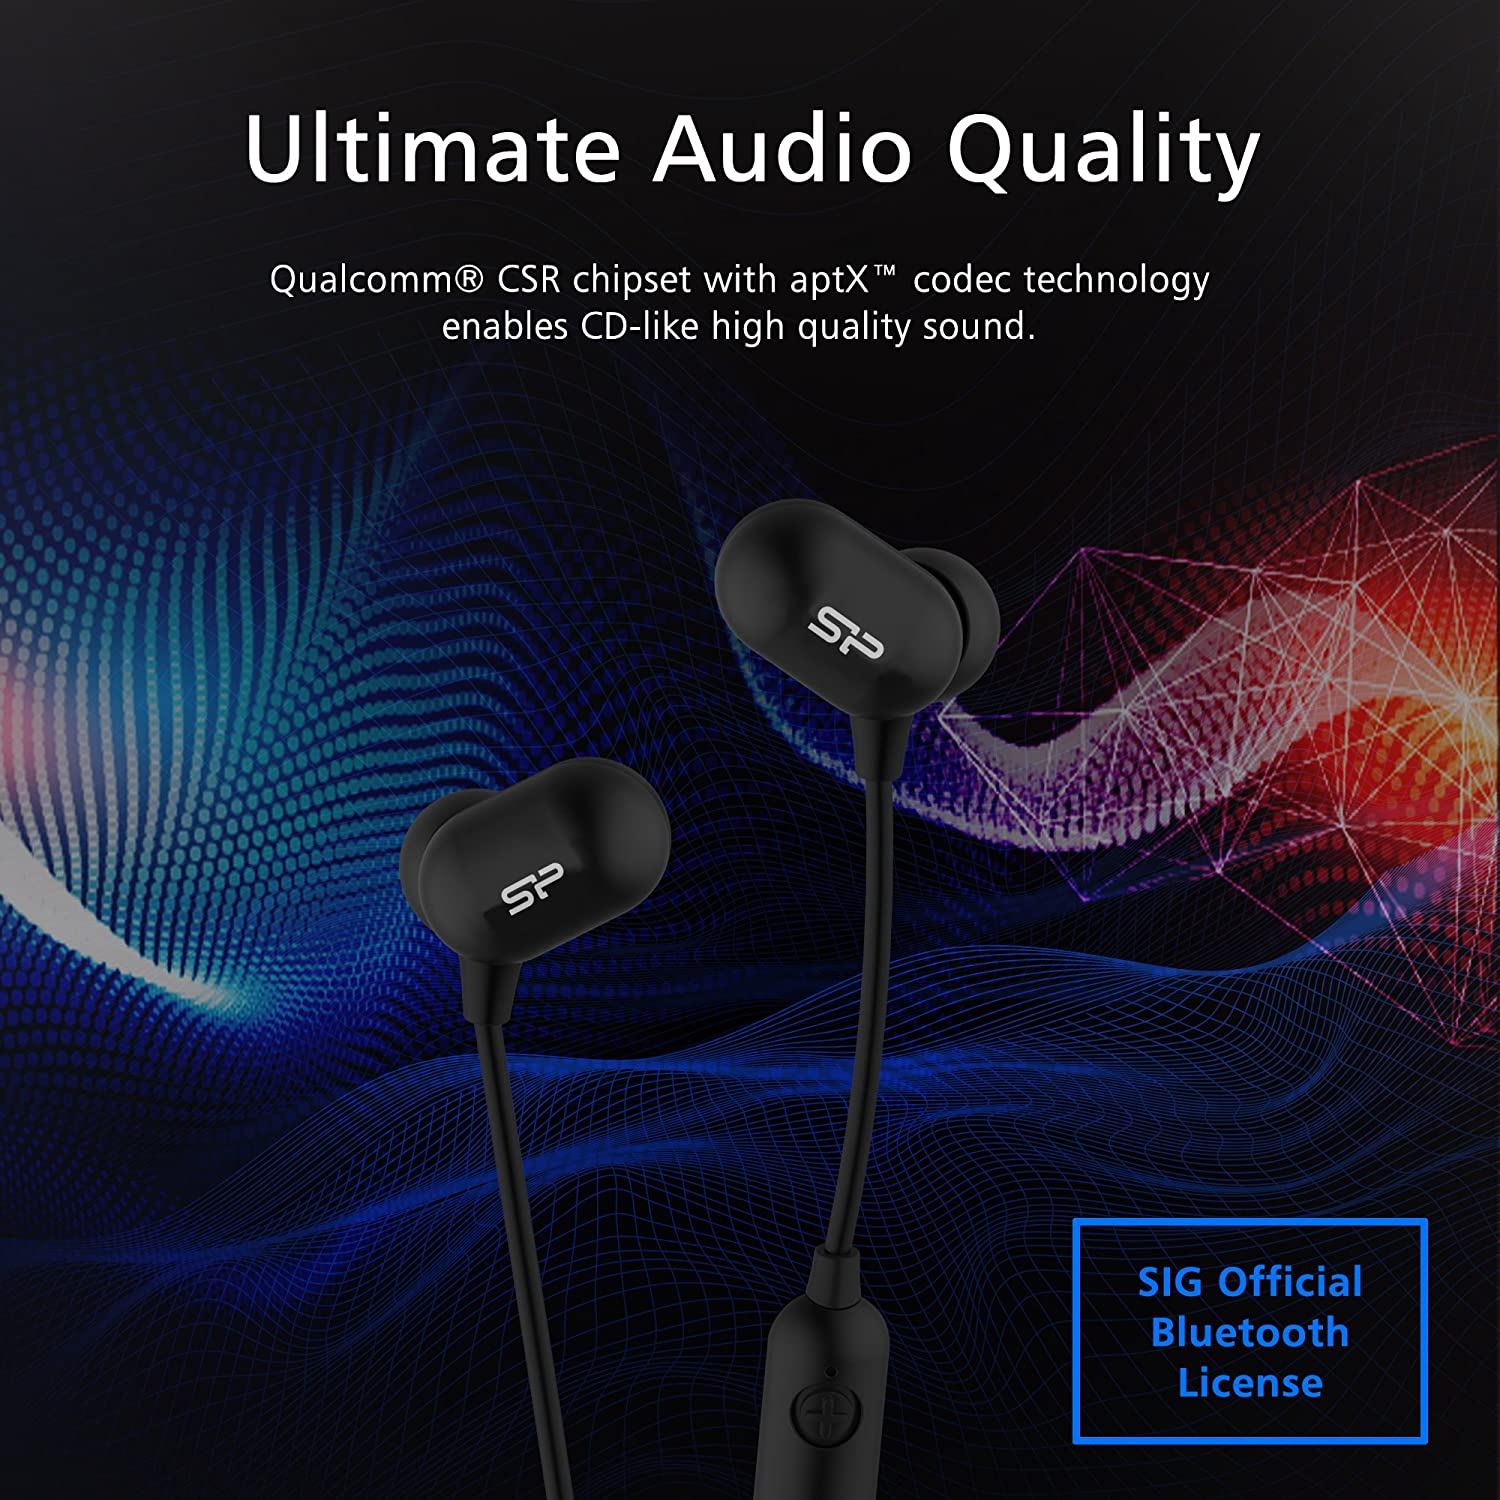 aptX Stereo Headset with Warm Bass Response Silicon Power SU3MWASYBP61BT0KAE Bluetooth 4.1 In Ear Headphones up to 8 Hour Play Time, Noise Cancelling IP64 Sweat proof In Ear Wireless Earbuds with Mic